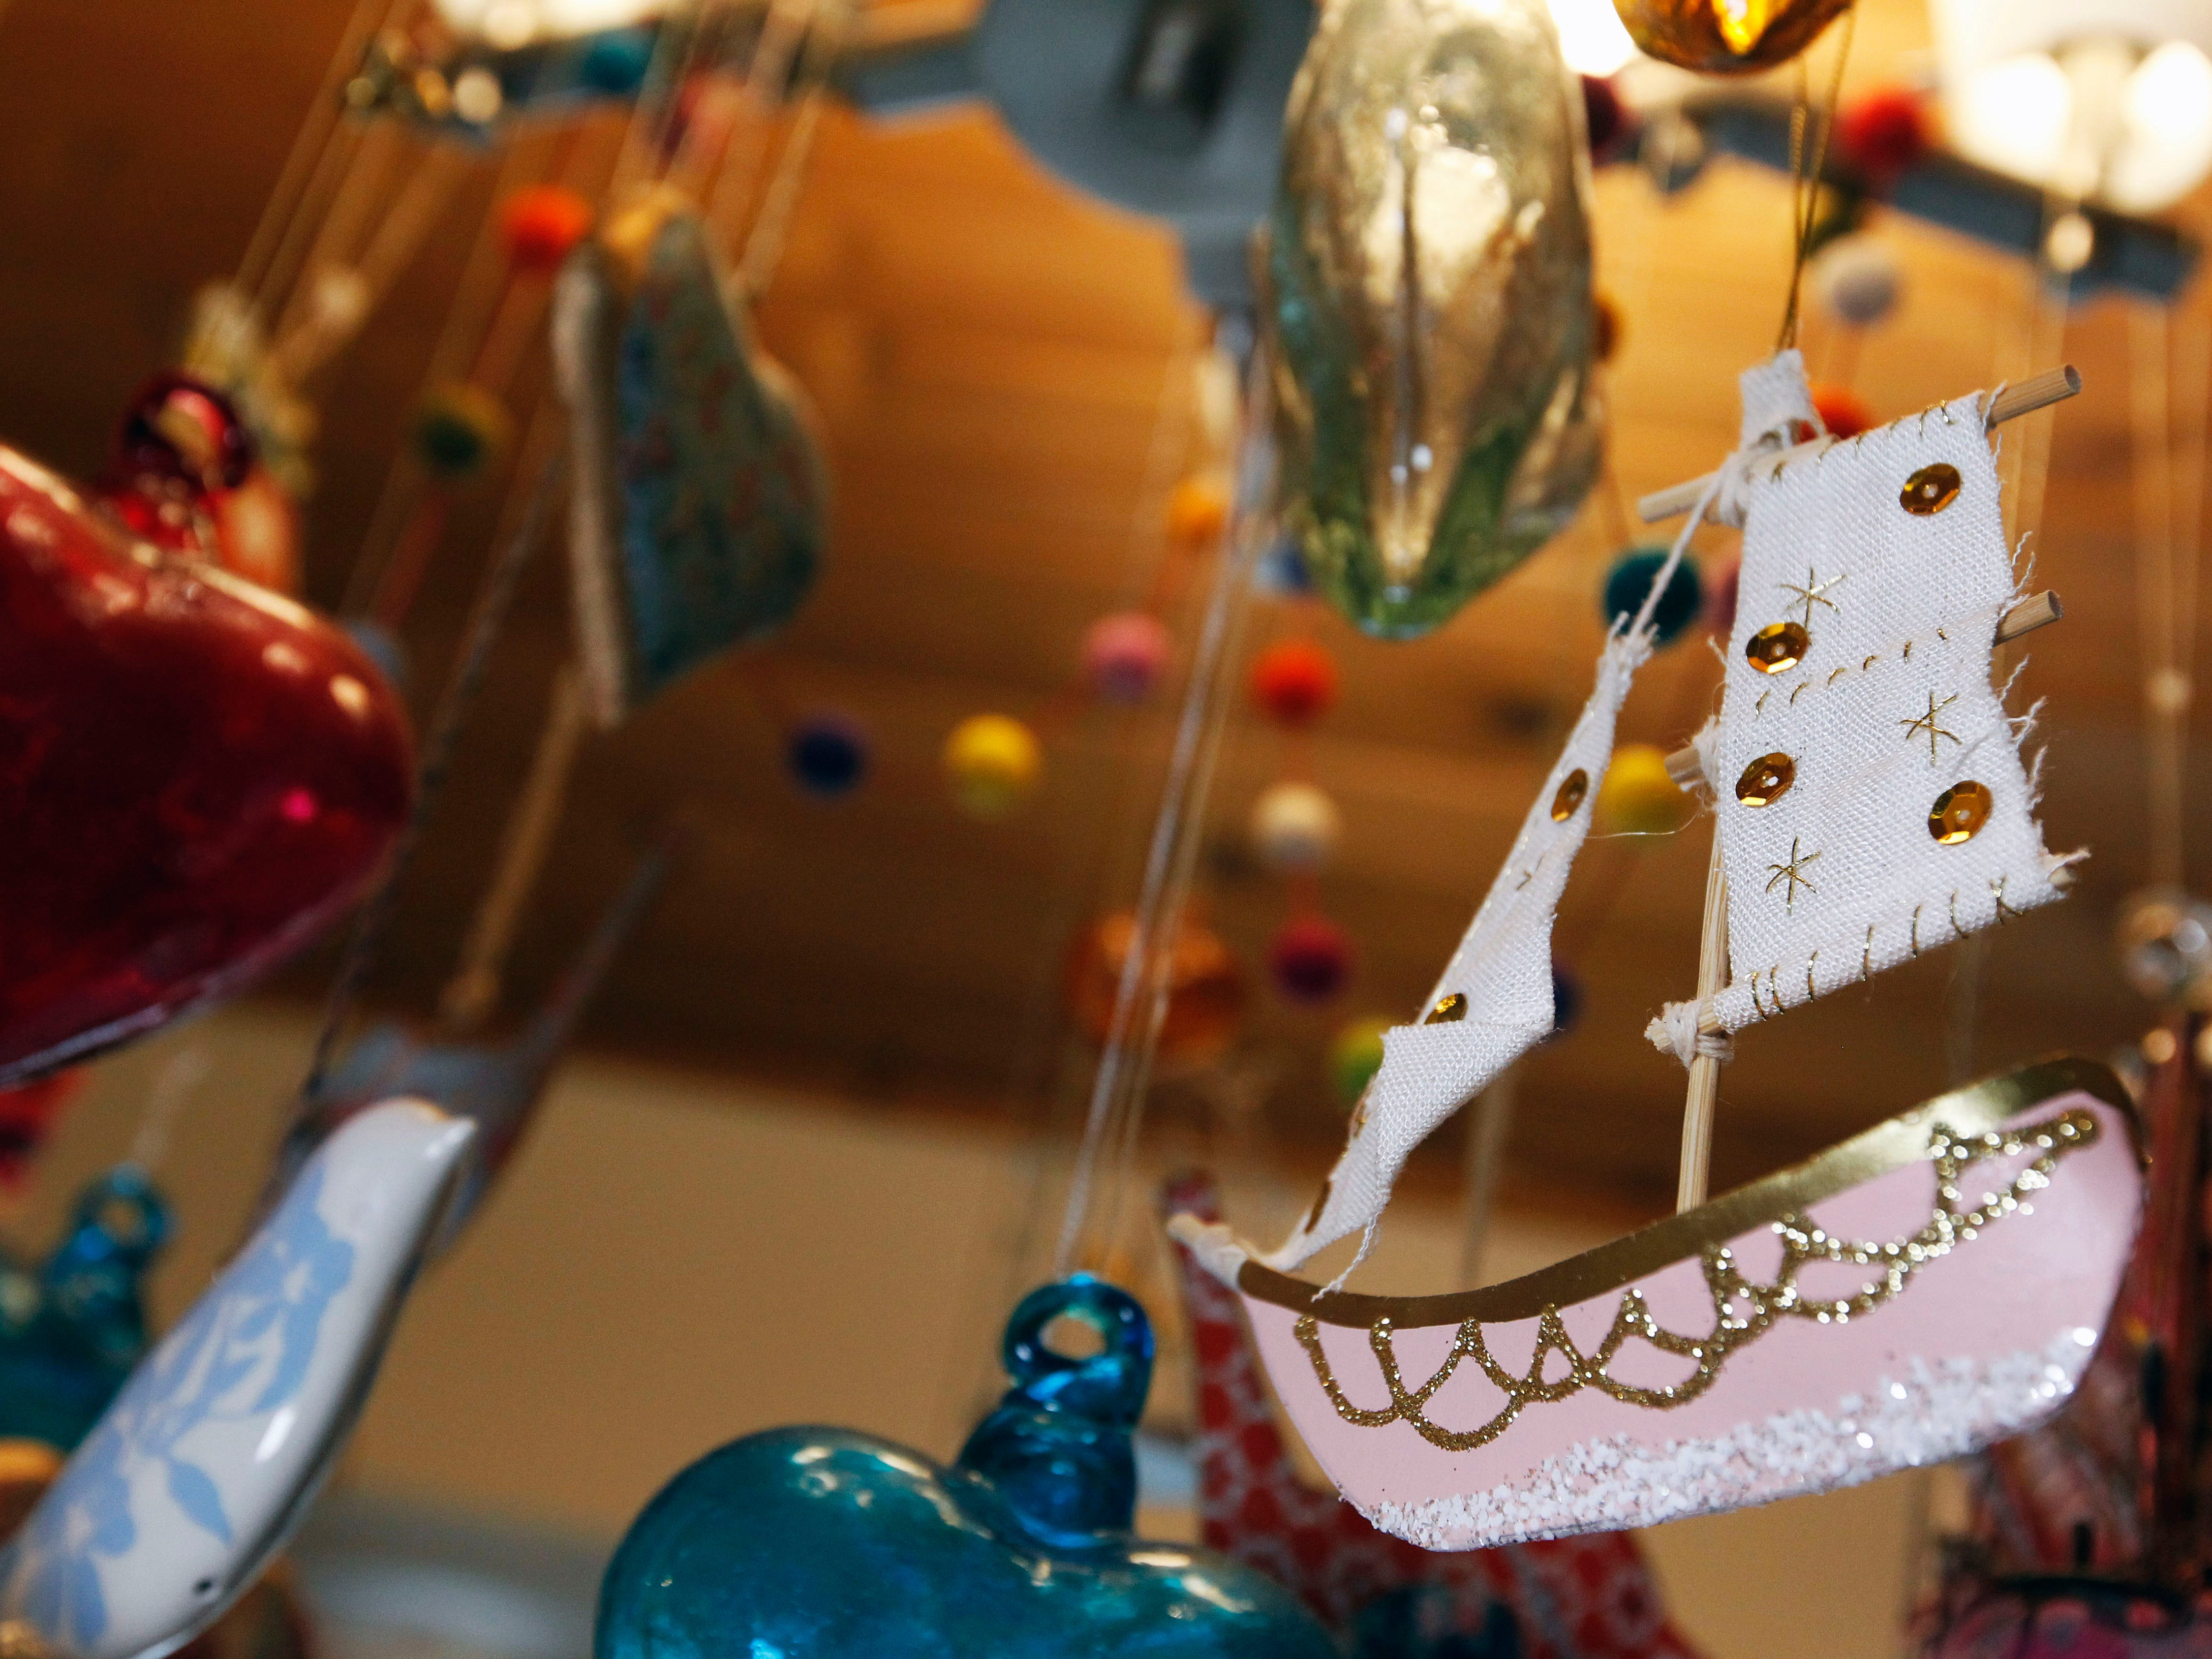 This mobile features original items created by KiKi Johanning, including this ship, a favorite design subject.